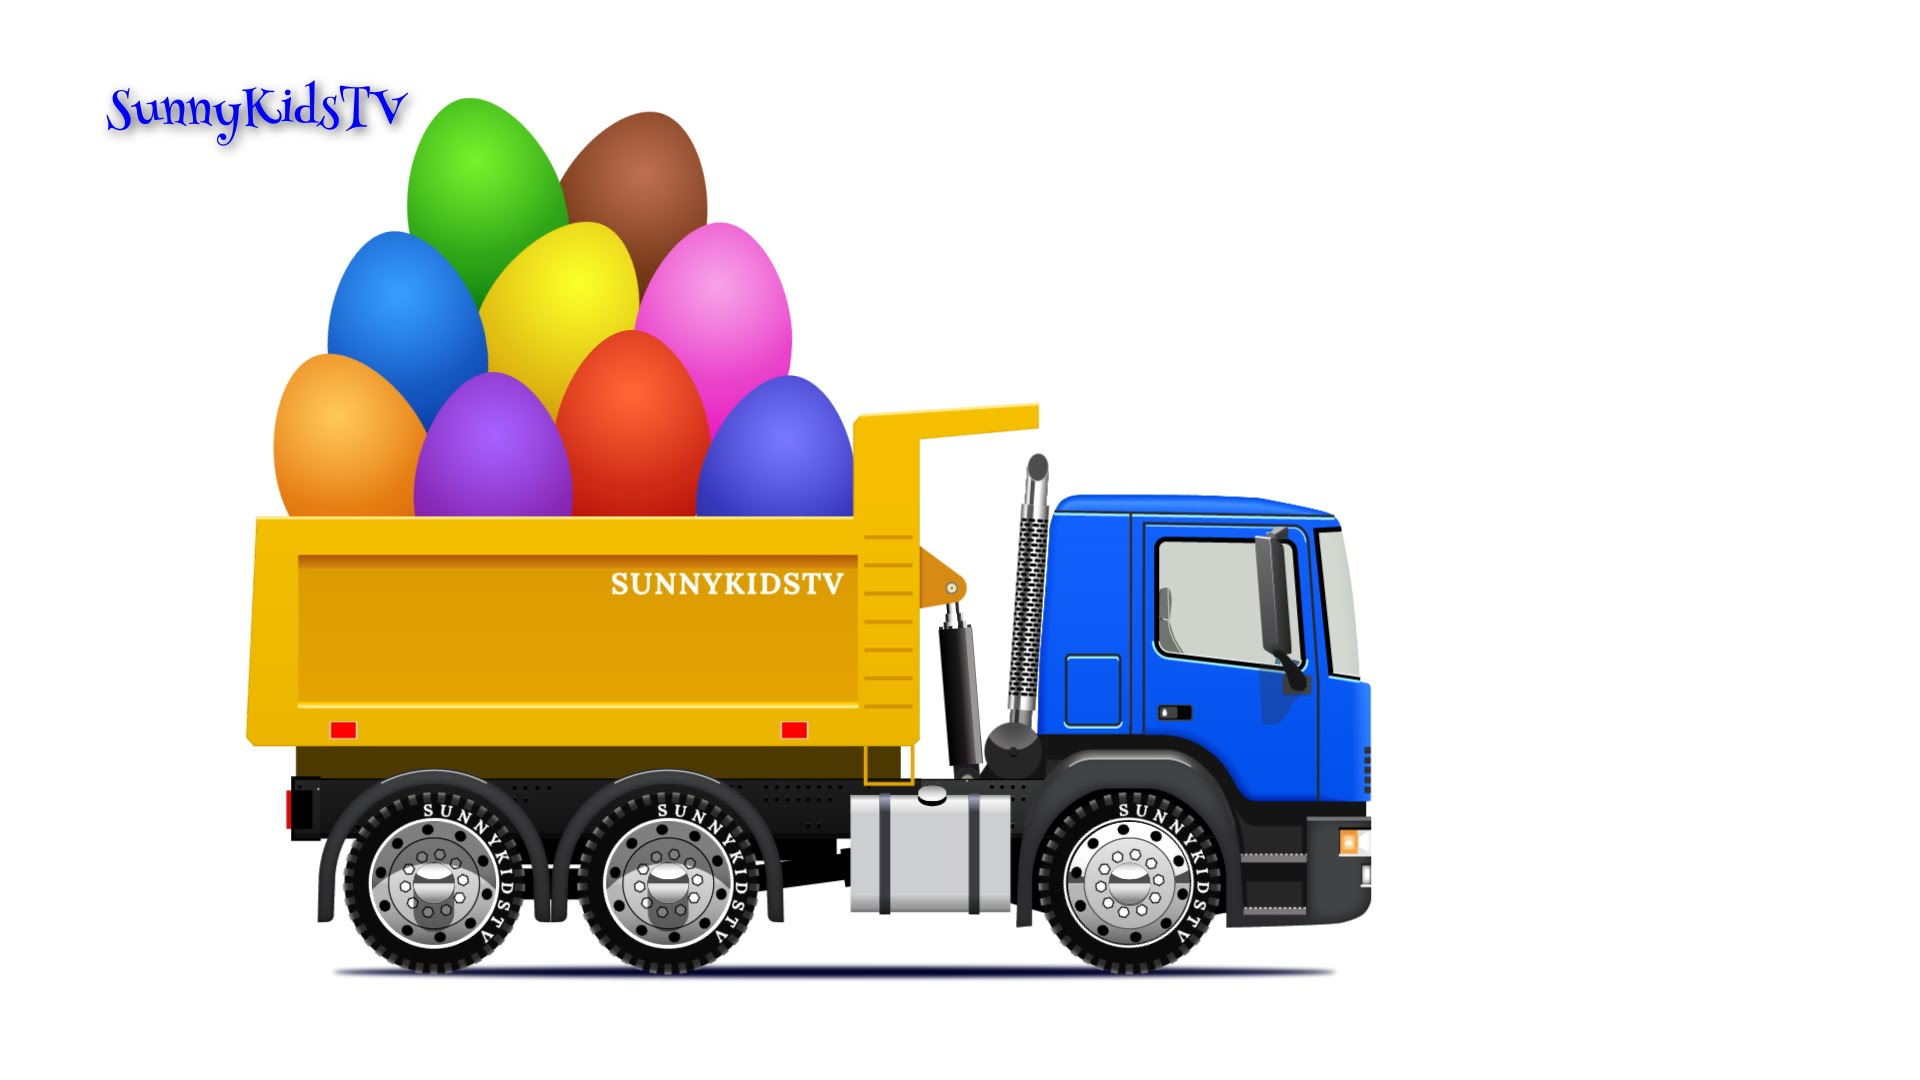 1920x1080 Trucks For Kids. Dump Truck. Surprise Eggs. Learn Fruits. Video